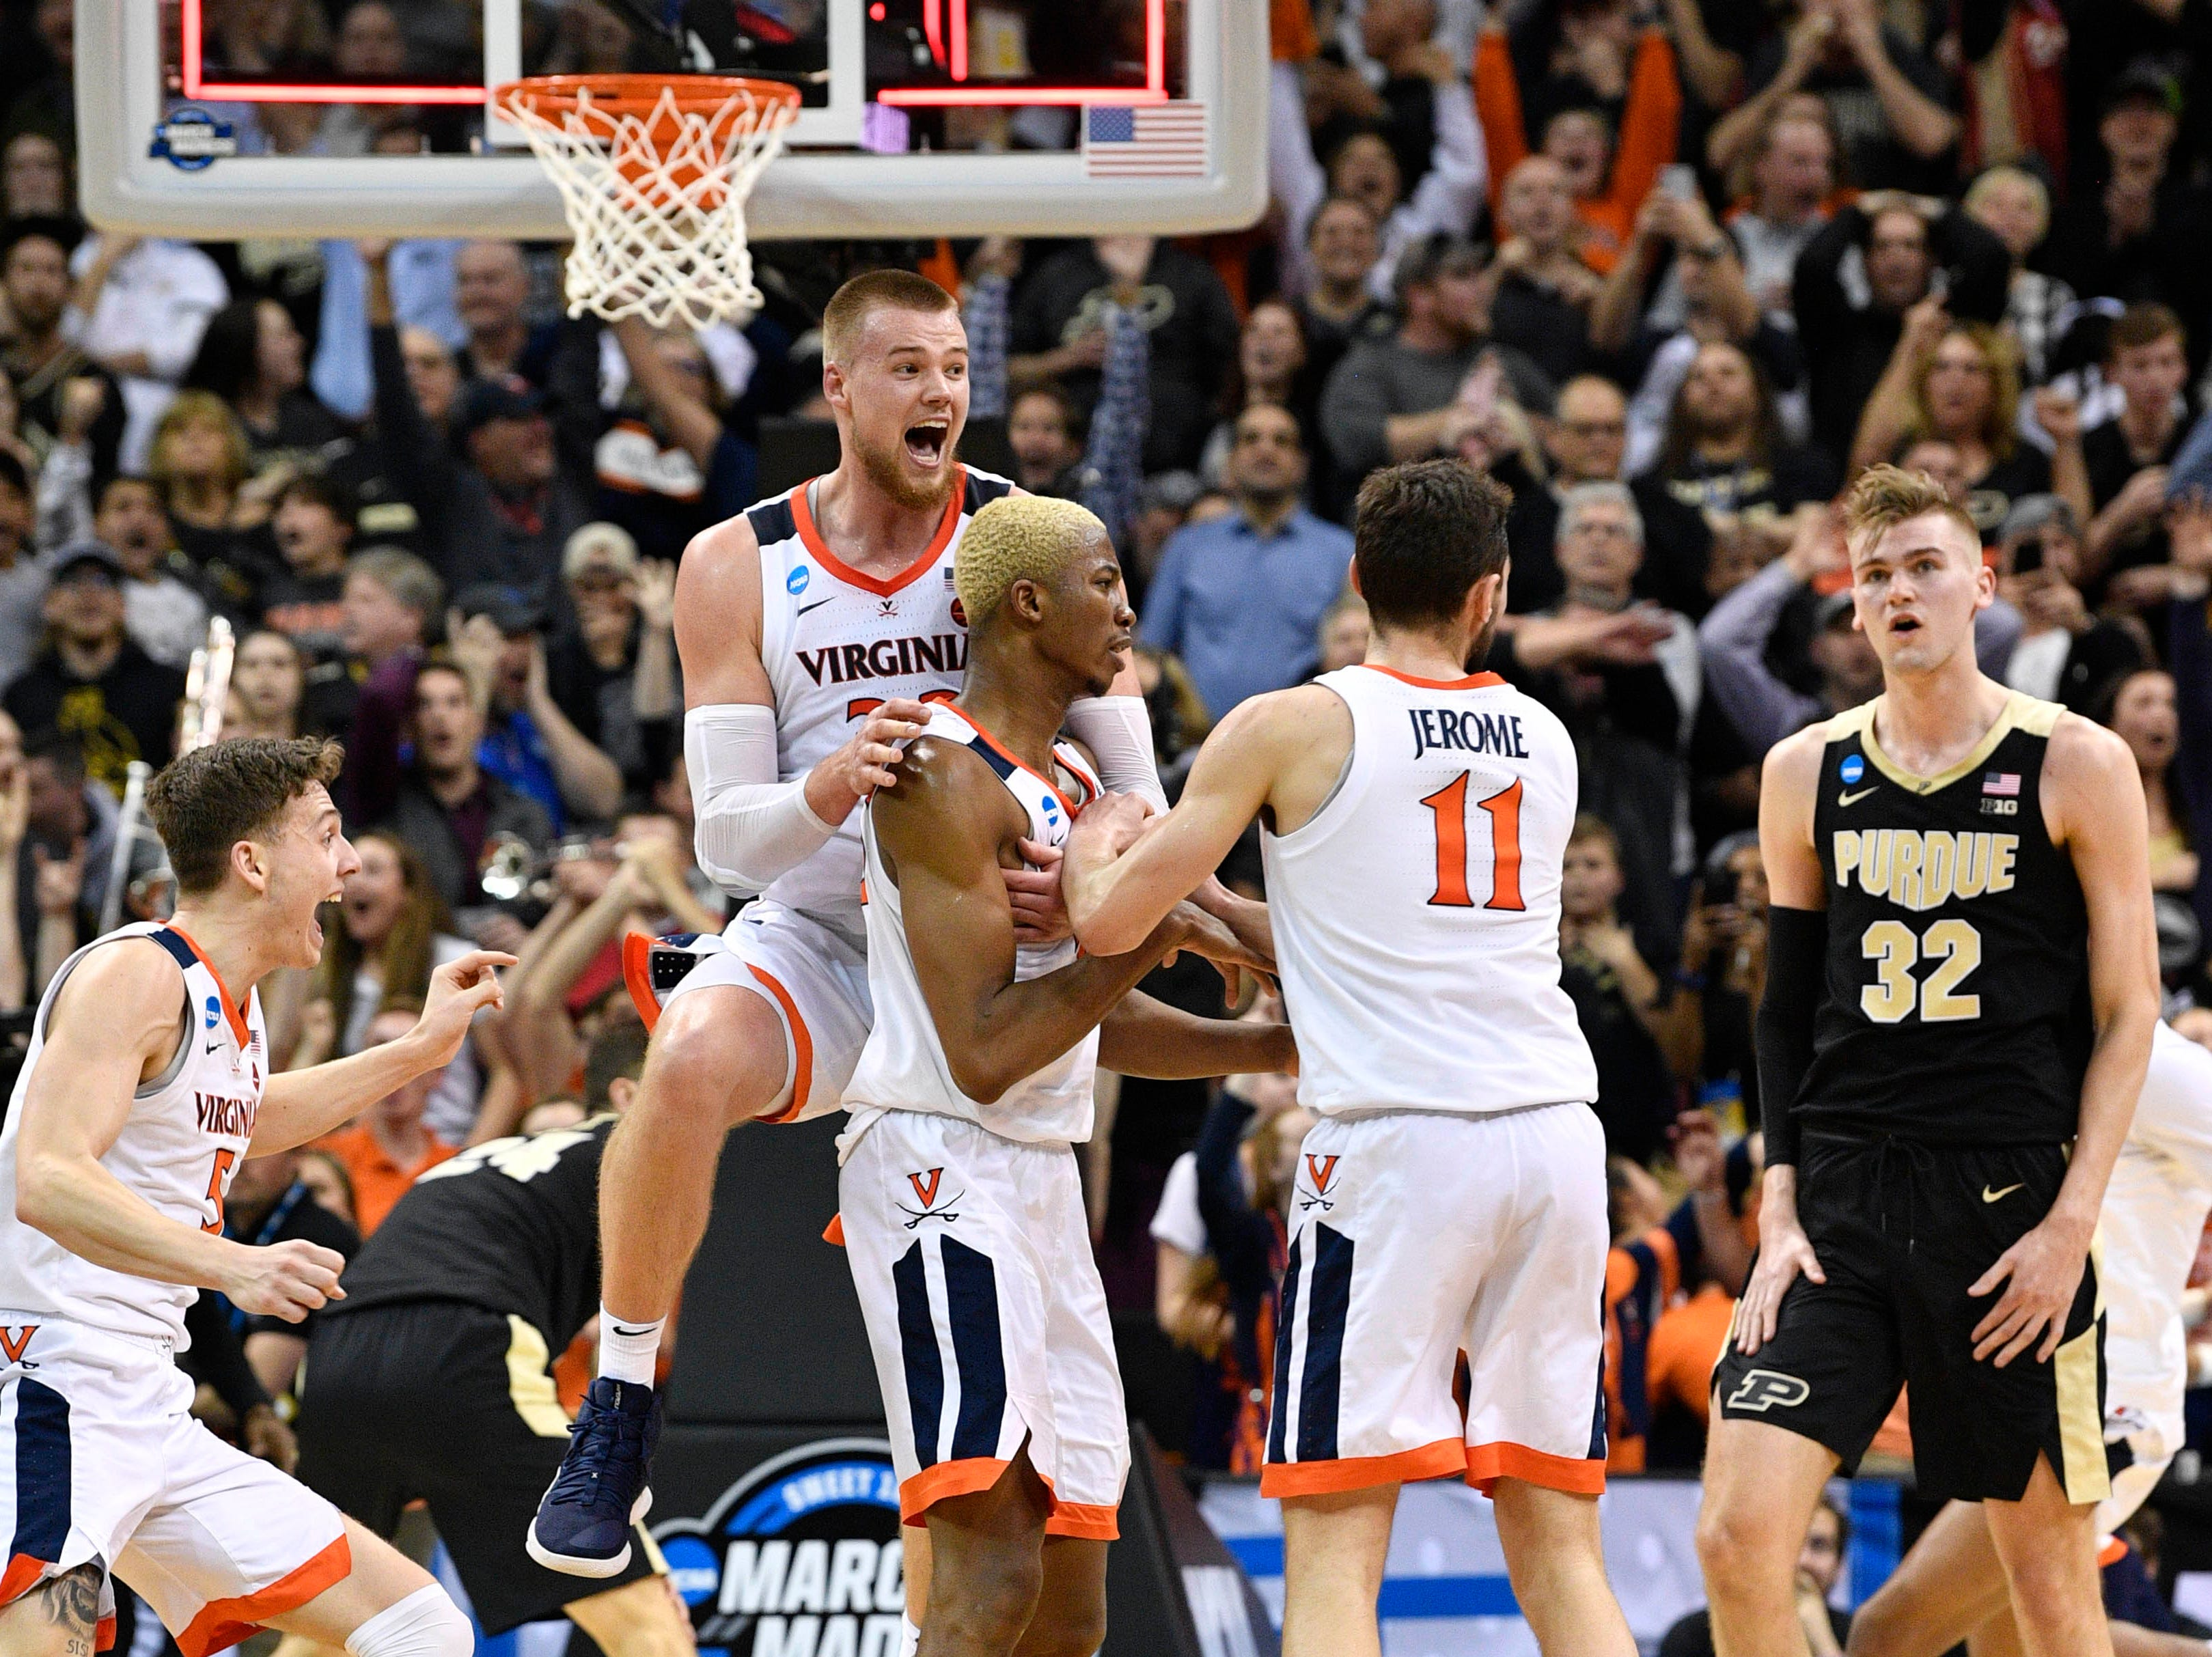 Mar 30, 2019; Louisville, KY, United States; Virginia Cavaliers forward Mamadi Diakite (25) reacts with center Jack Salt (33) and guard Ty Jerome (11) as Purdue Boilermakers center Matt Haarms (32) looks on when the game is tied during the second half in the championship game of the south regional of the 2019 NCAA Tournament at KFC Yum Center. Mandatory Credit: Jamie Rhodes-USA TODAY Sports